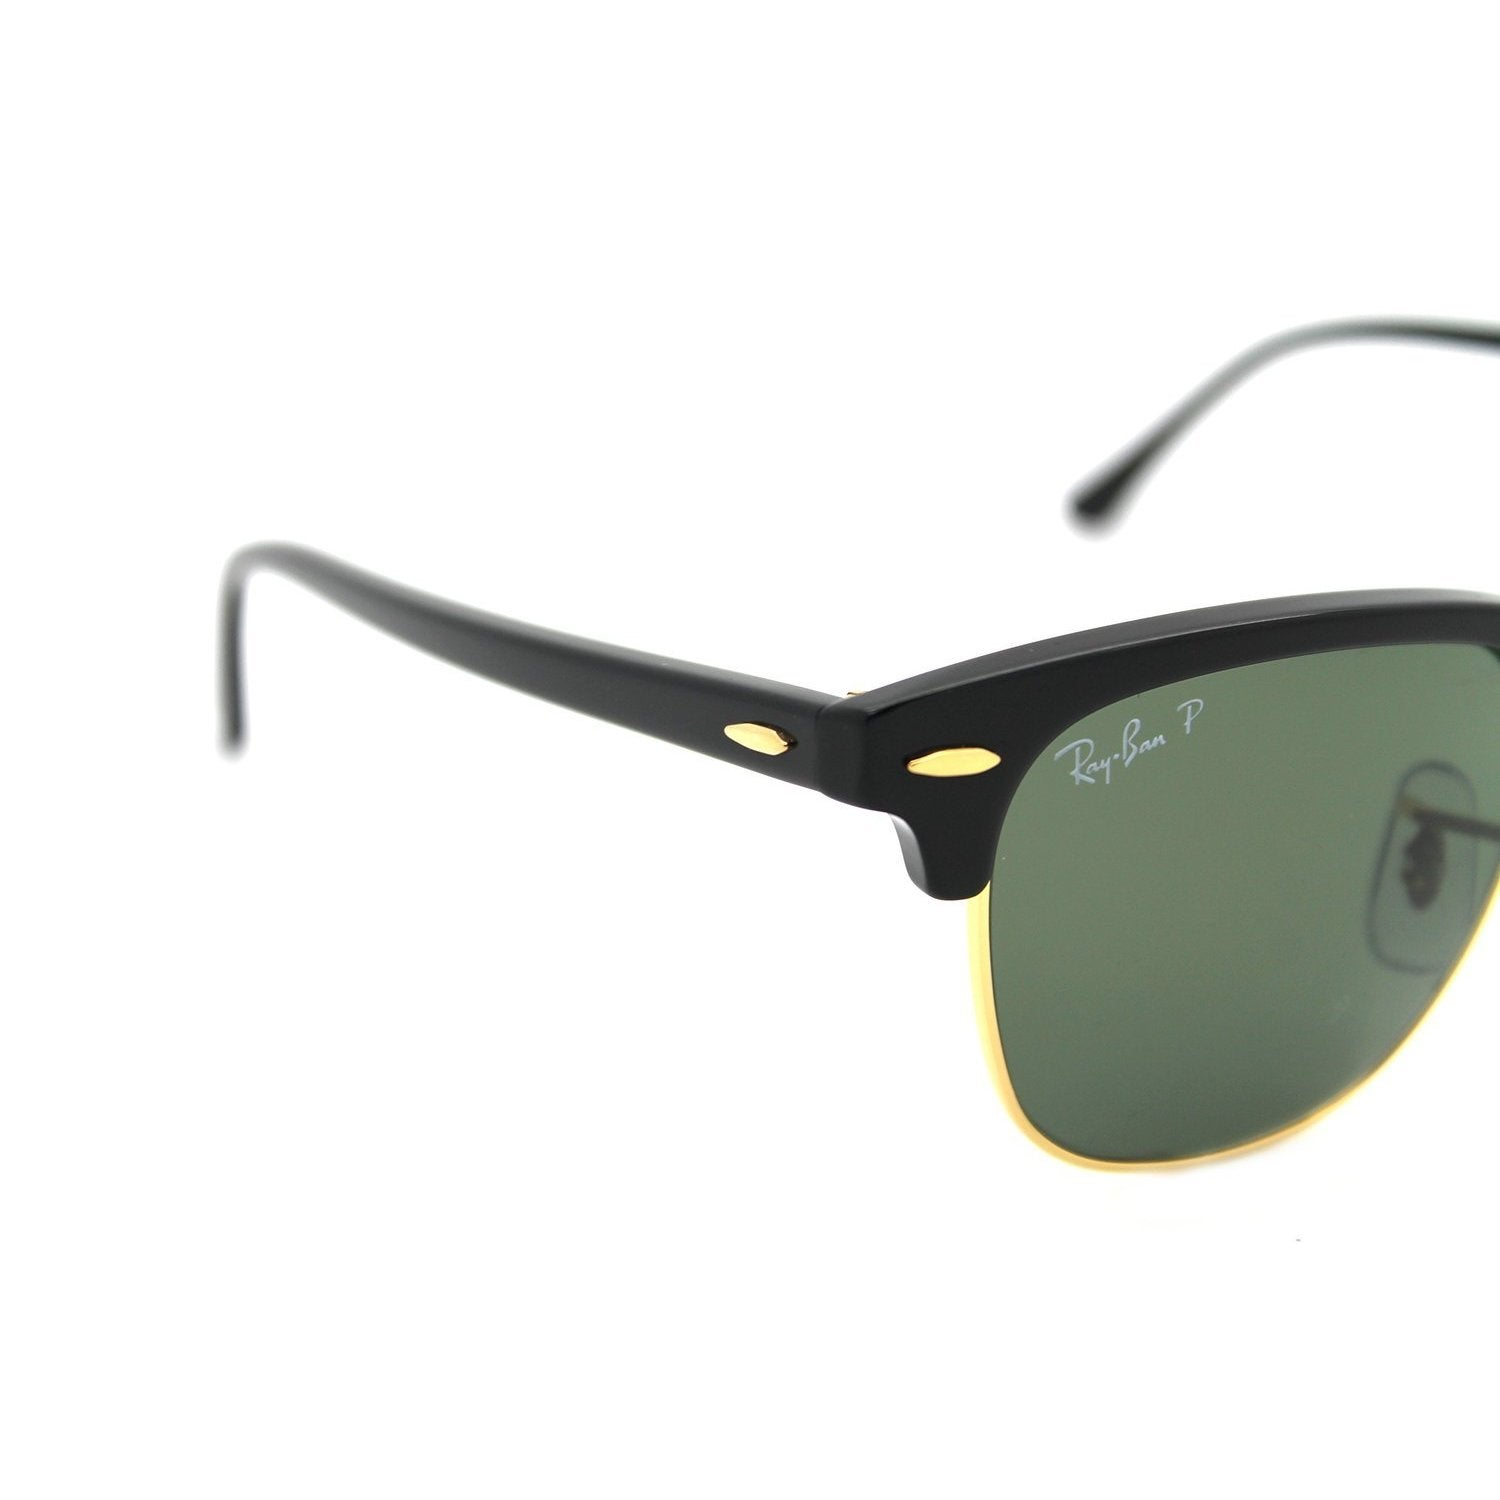 59ebda84e5 Shop Ray-Ban RB3016 901 58 Clubmaster Classic Black Frame Polarized Green  Classic 49mm Lens Sunglasses - Free Shipping Today - Overstock - 11708008